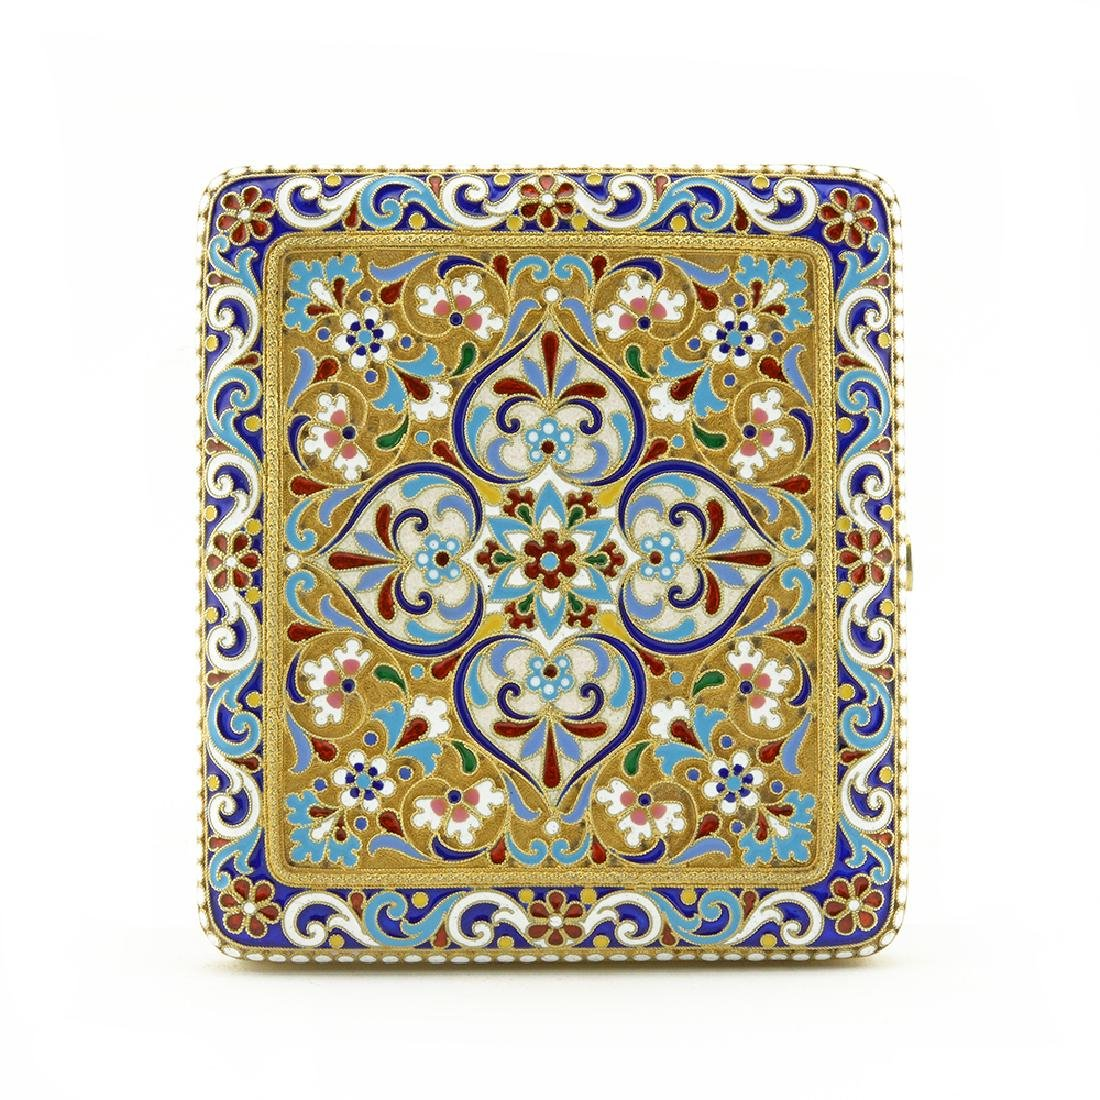 Russian silver and enamel cigarette case